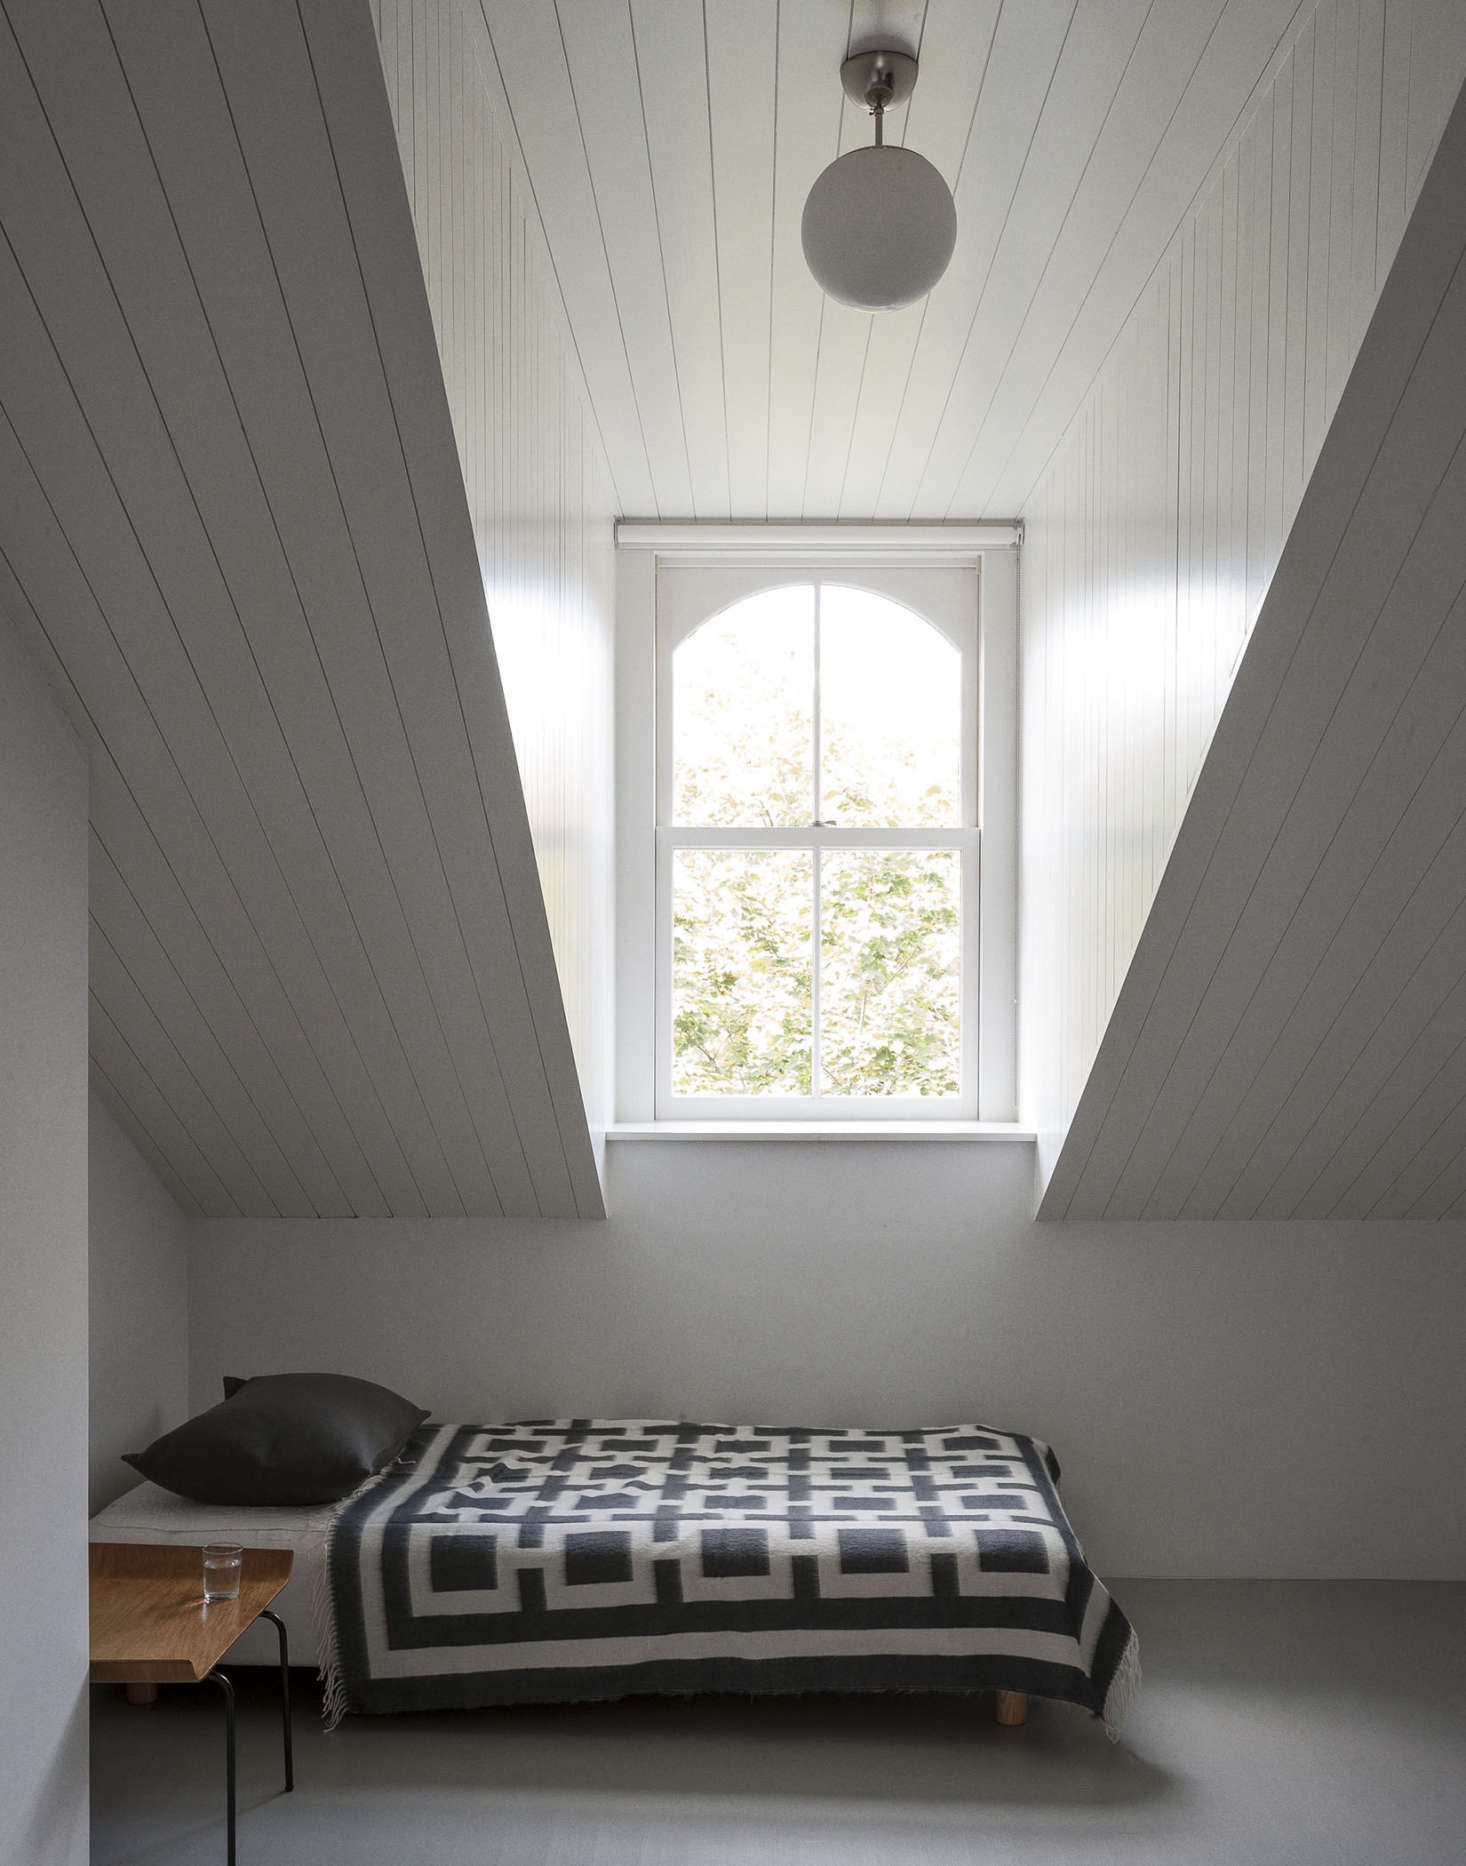 A black and white wool blanket in an attic room by architects Solveig Fernlund and Neil Logan. Photograph by Matthew Williams for Remodelista.